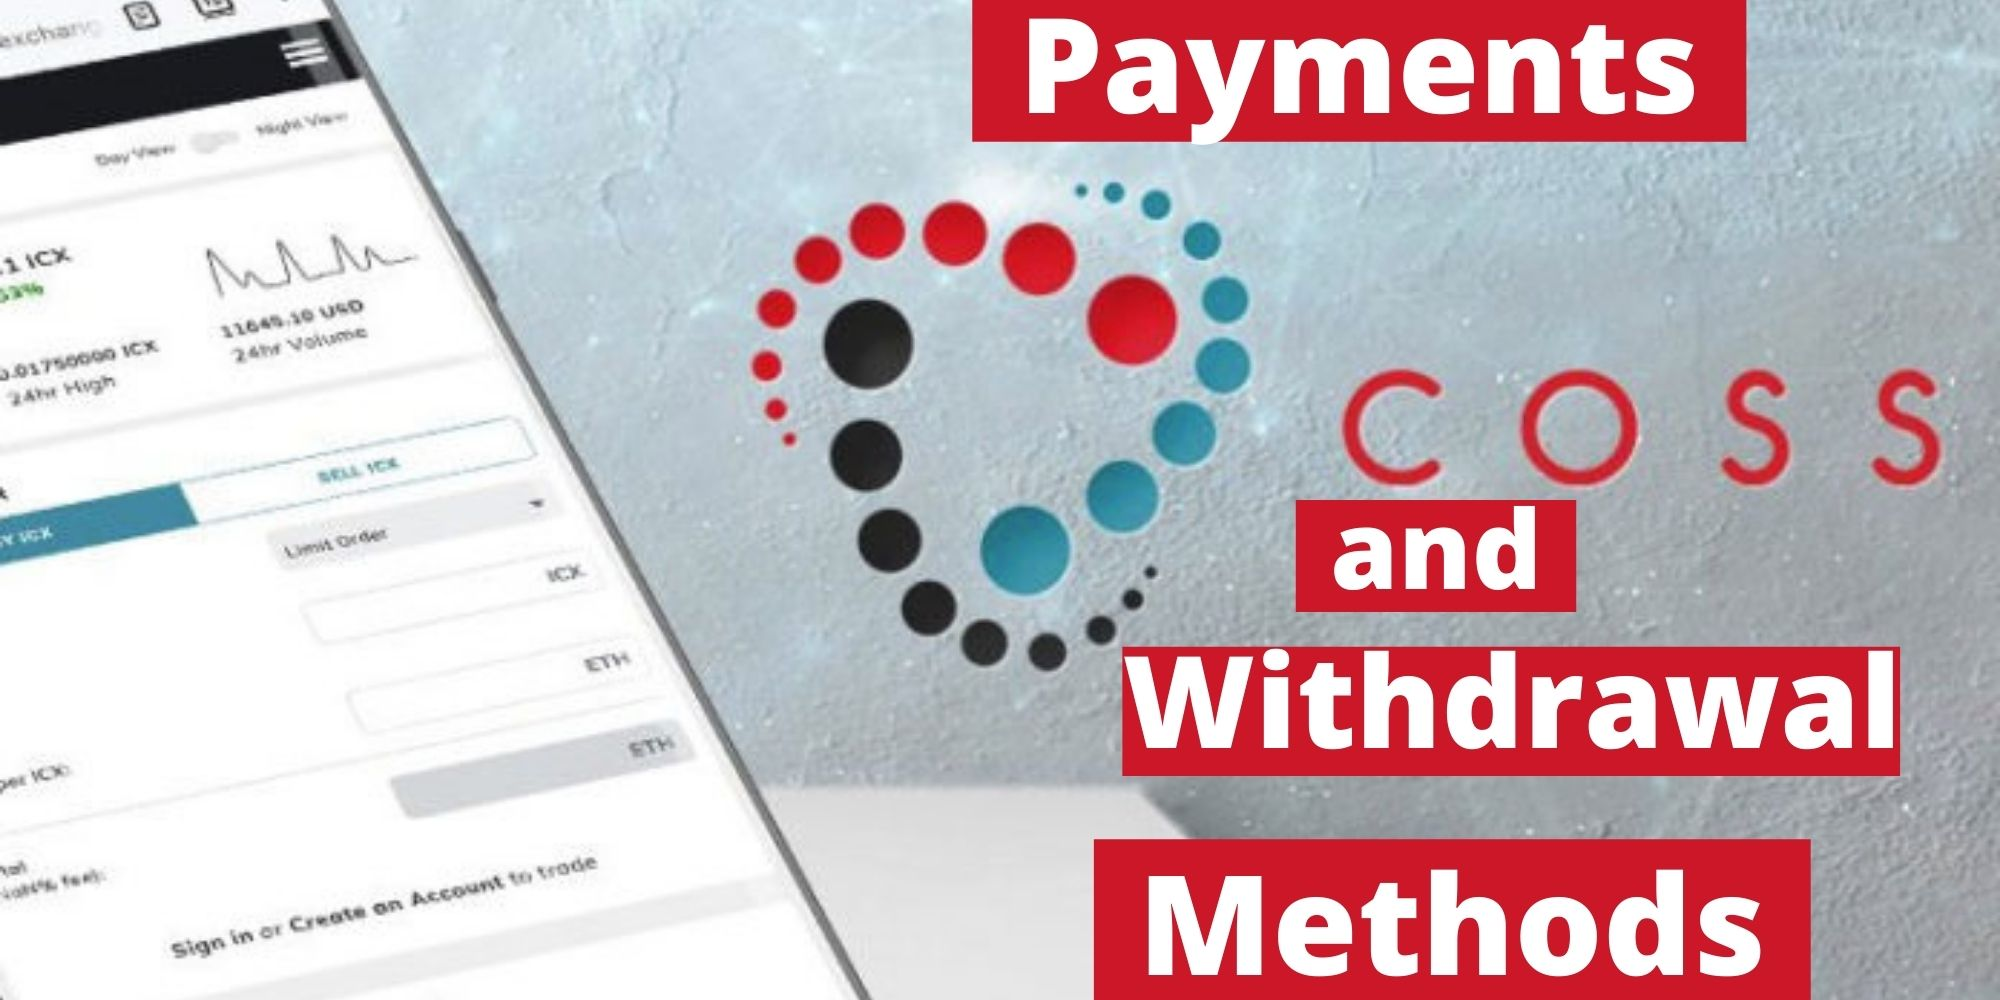 coss payments and withdrawal methods